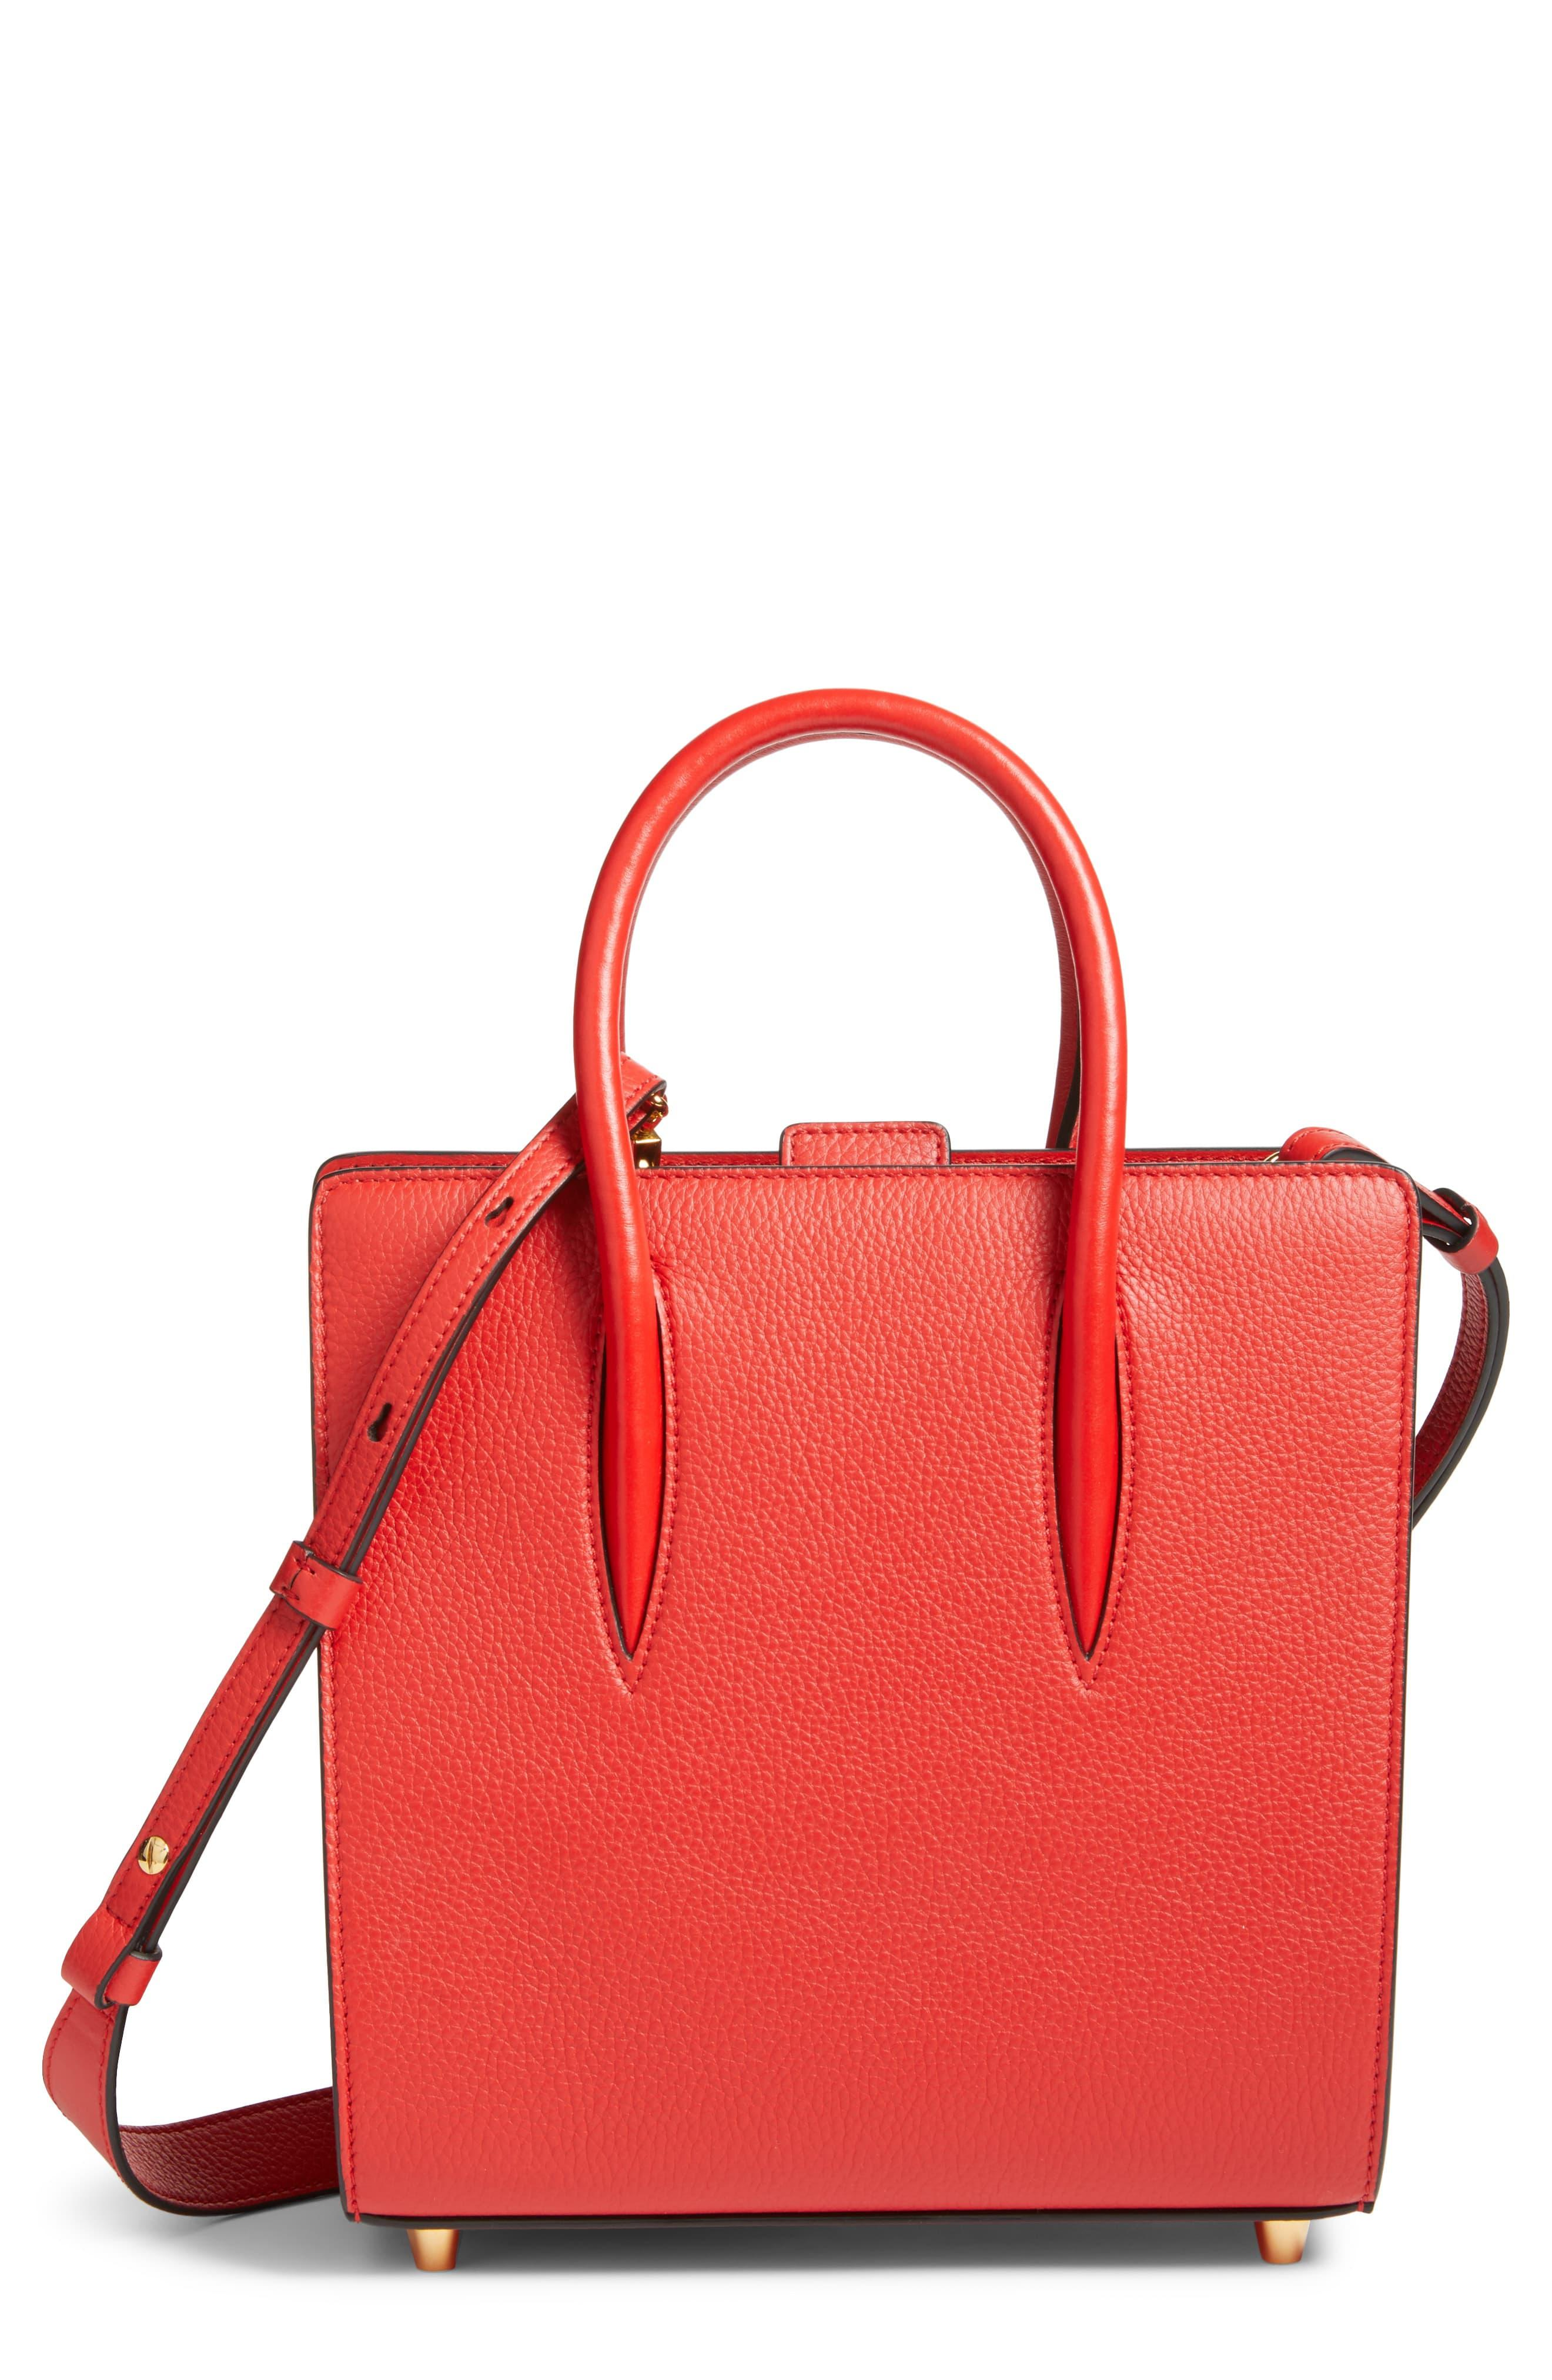 2993695f73f Christian Louboutin Small Paloma Empire Leather Tote in Red - Lyst